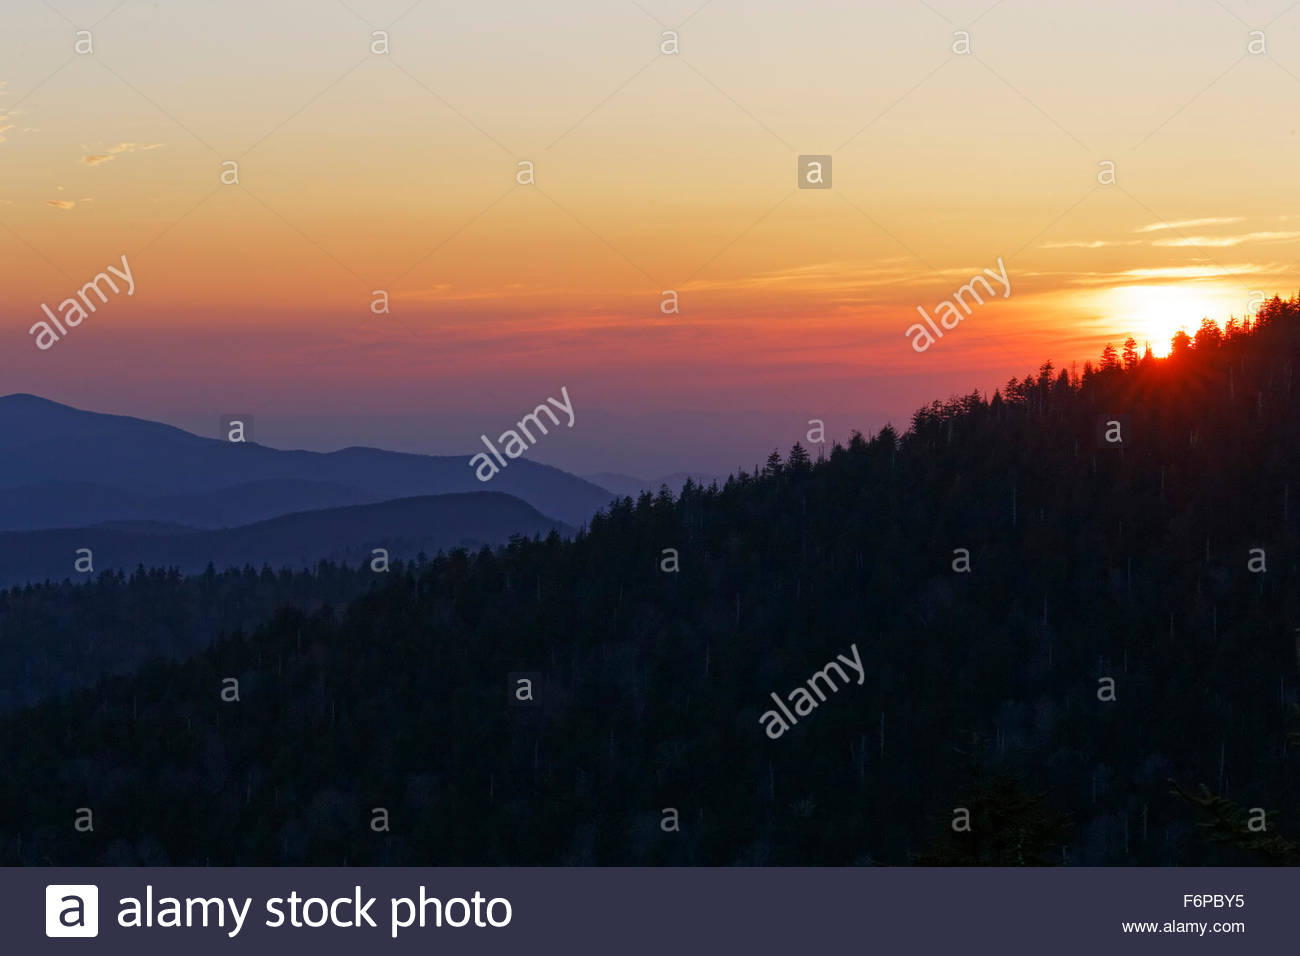 Sunset in Great Smoky Mountains National Park. - Stock Image